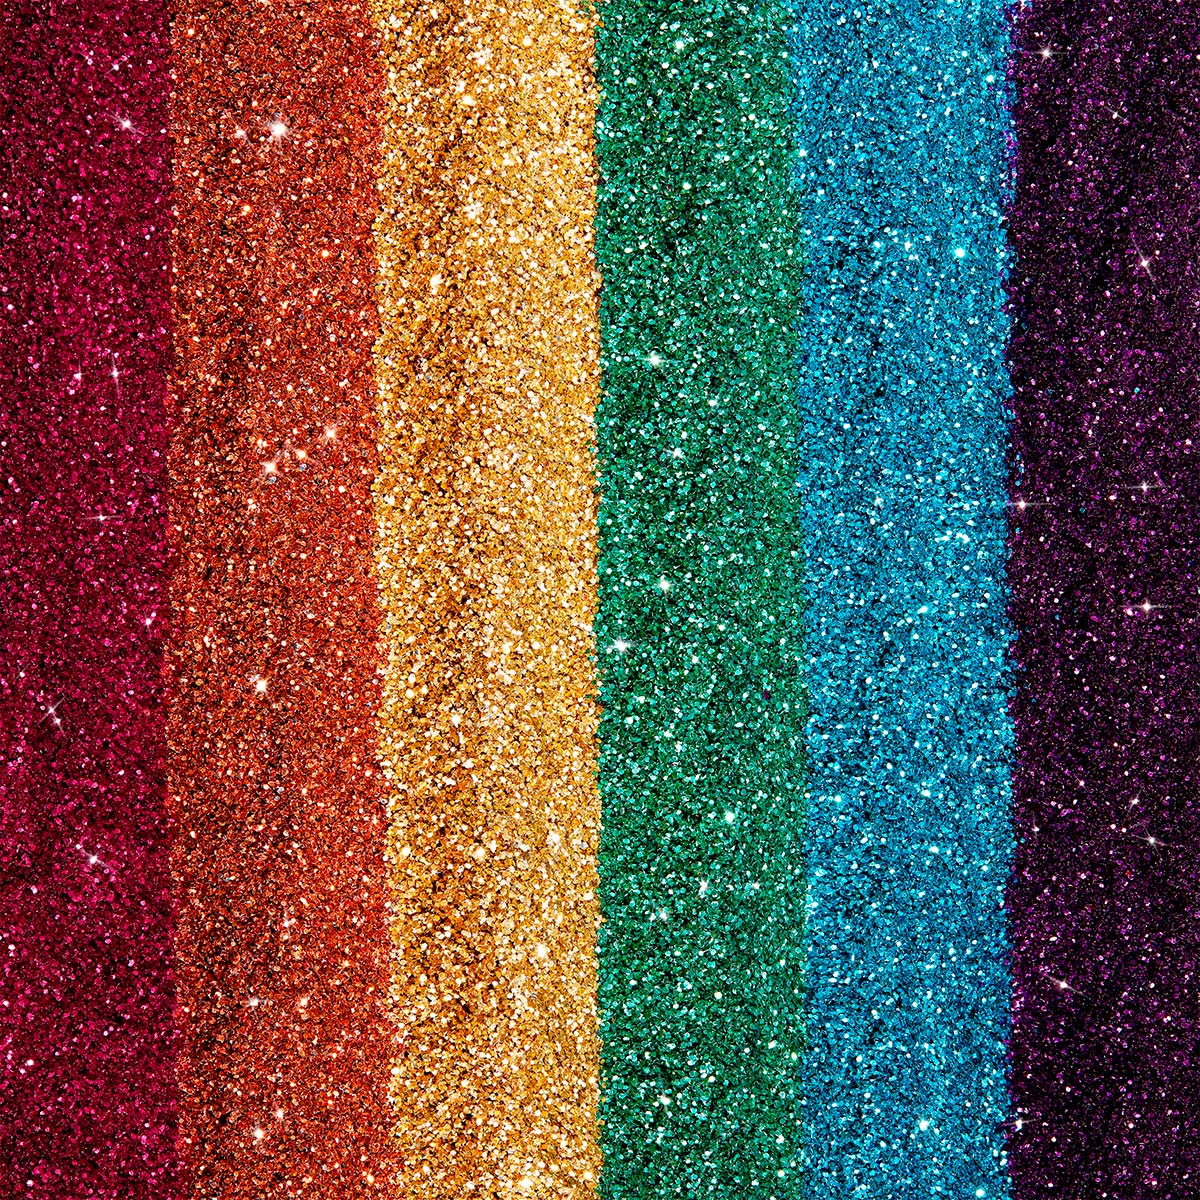 Rainbow Biodegradable Glitter - Gigi's Eco Collection